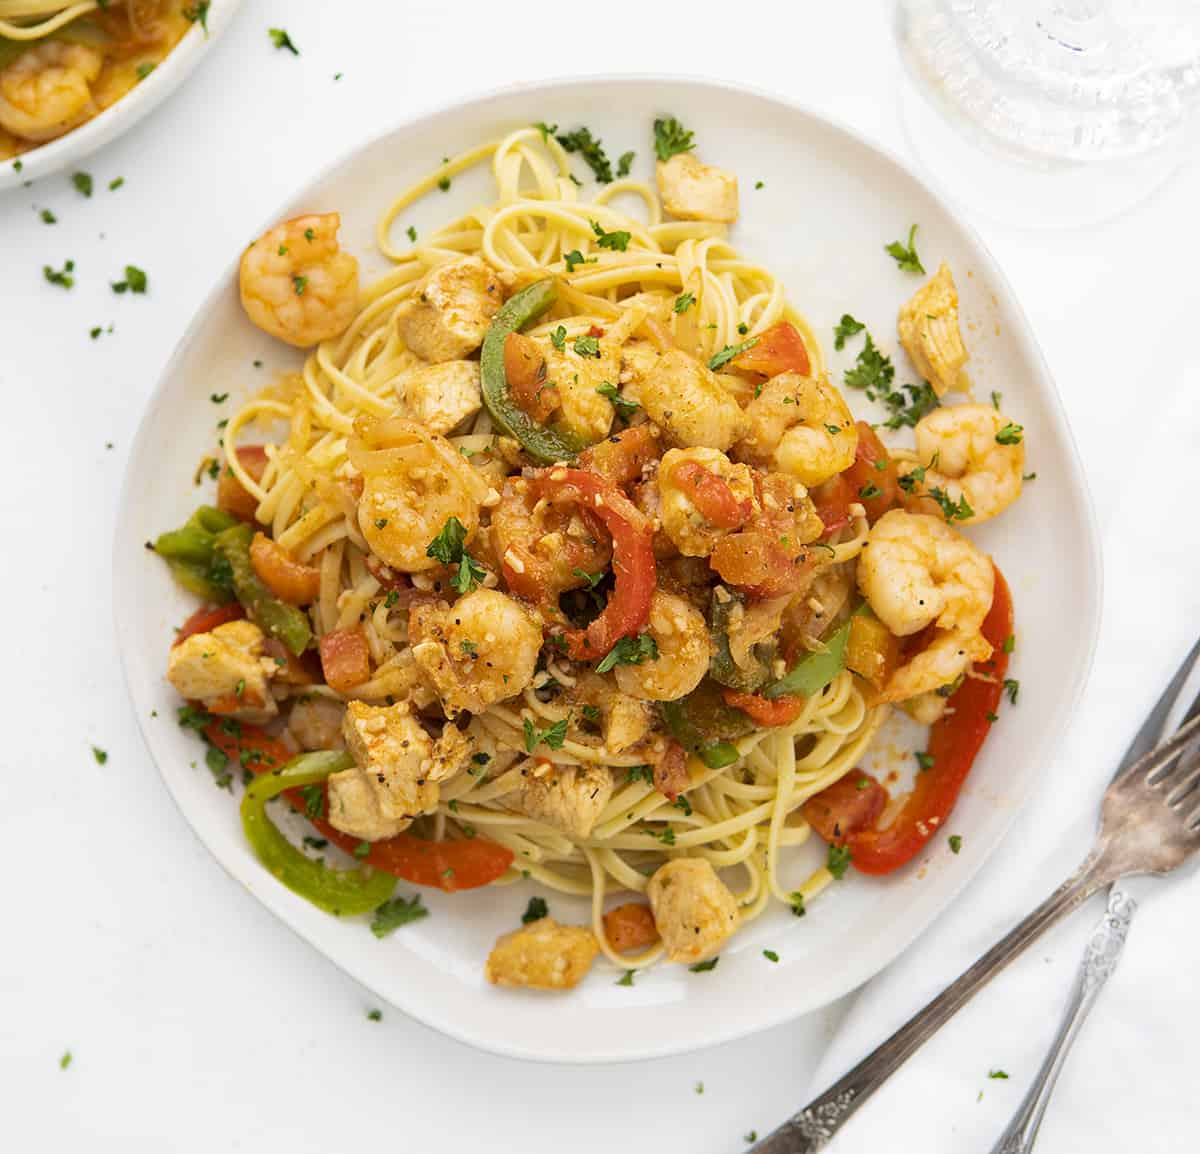 Overhead View of Cajun Chicken Jumbalaya Pasta on White Plate with Forks and White Napkin